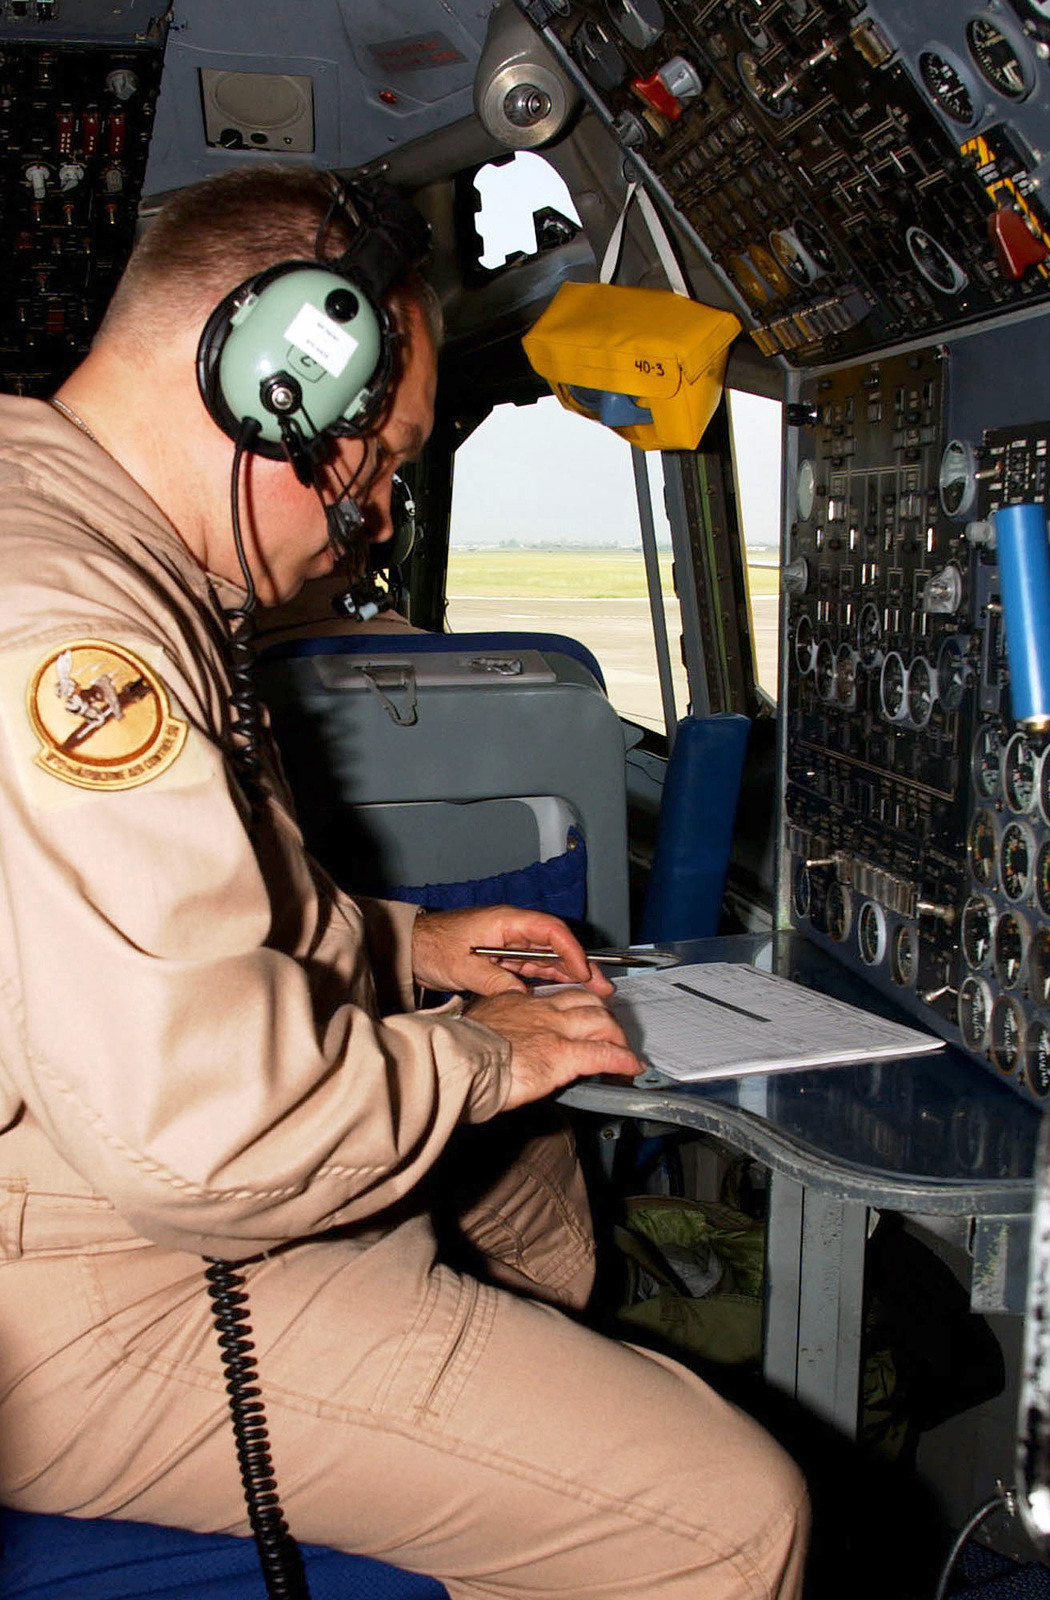 US Air Force (USAF) SENIOR MASTER Sergeant (SMSGT) William Gates, a Flight Engineer assigned to the 970th Expeditionary Air Borne Control Squadron, performs a system check at his station aboard a USAF E-3A Sentry Airborne Warning and Control System (AWACS) aircraft, while deployed at Incirlik Air Base (AB), Turkey